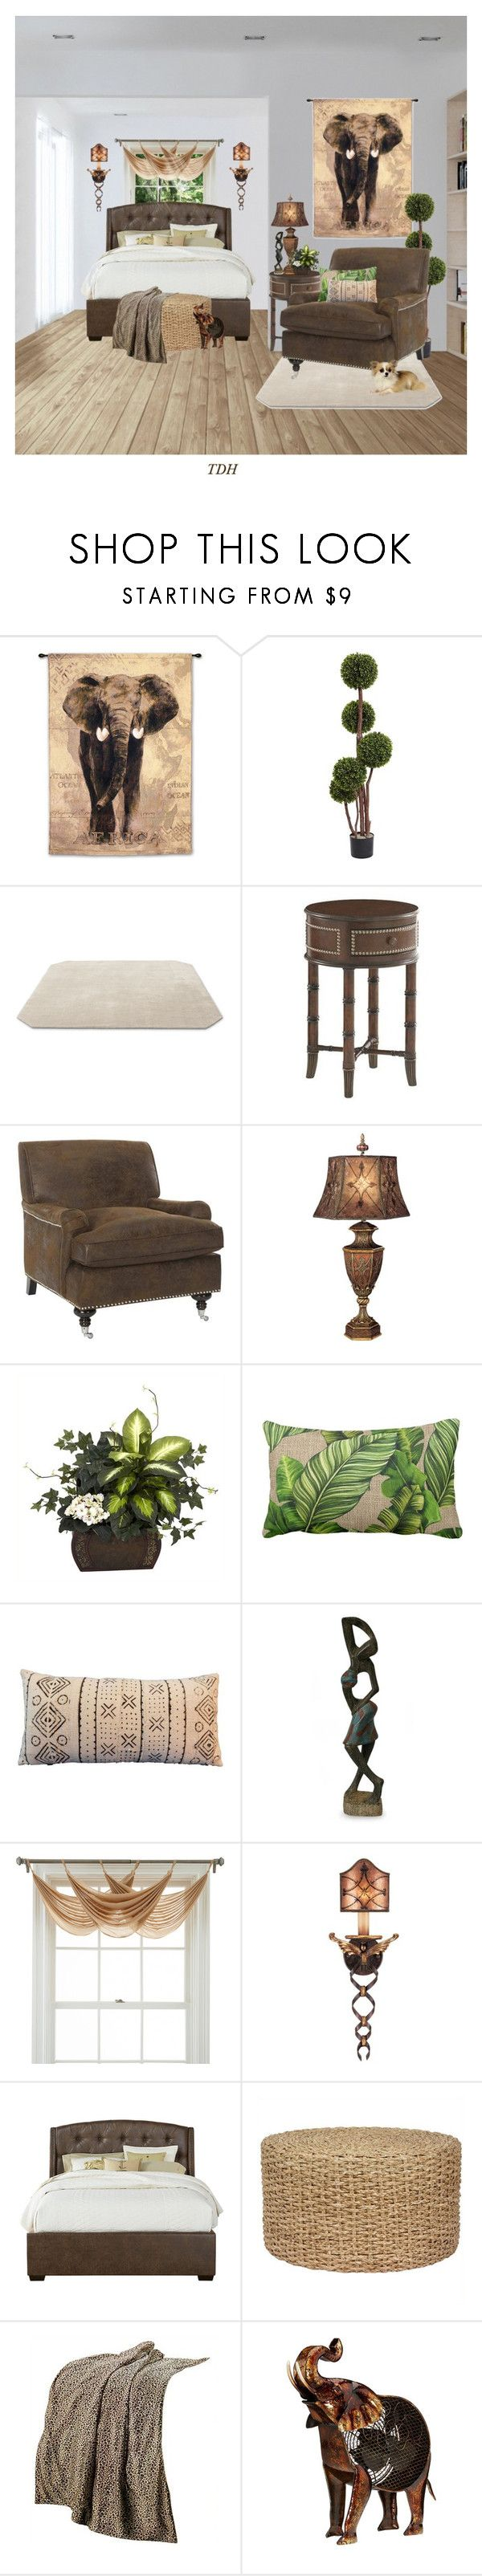 """""""The Bedroom"""" by talvadh ❤ liked on Polyvore featuring interior, interiors, interior design, home, home decor, interior decorating, &Tradition, Tommy Bahama, Safavieh and Fine Art Lamps"""